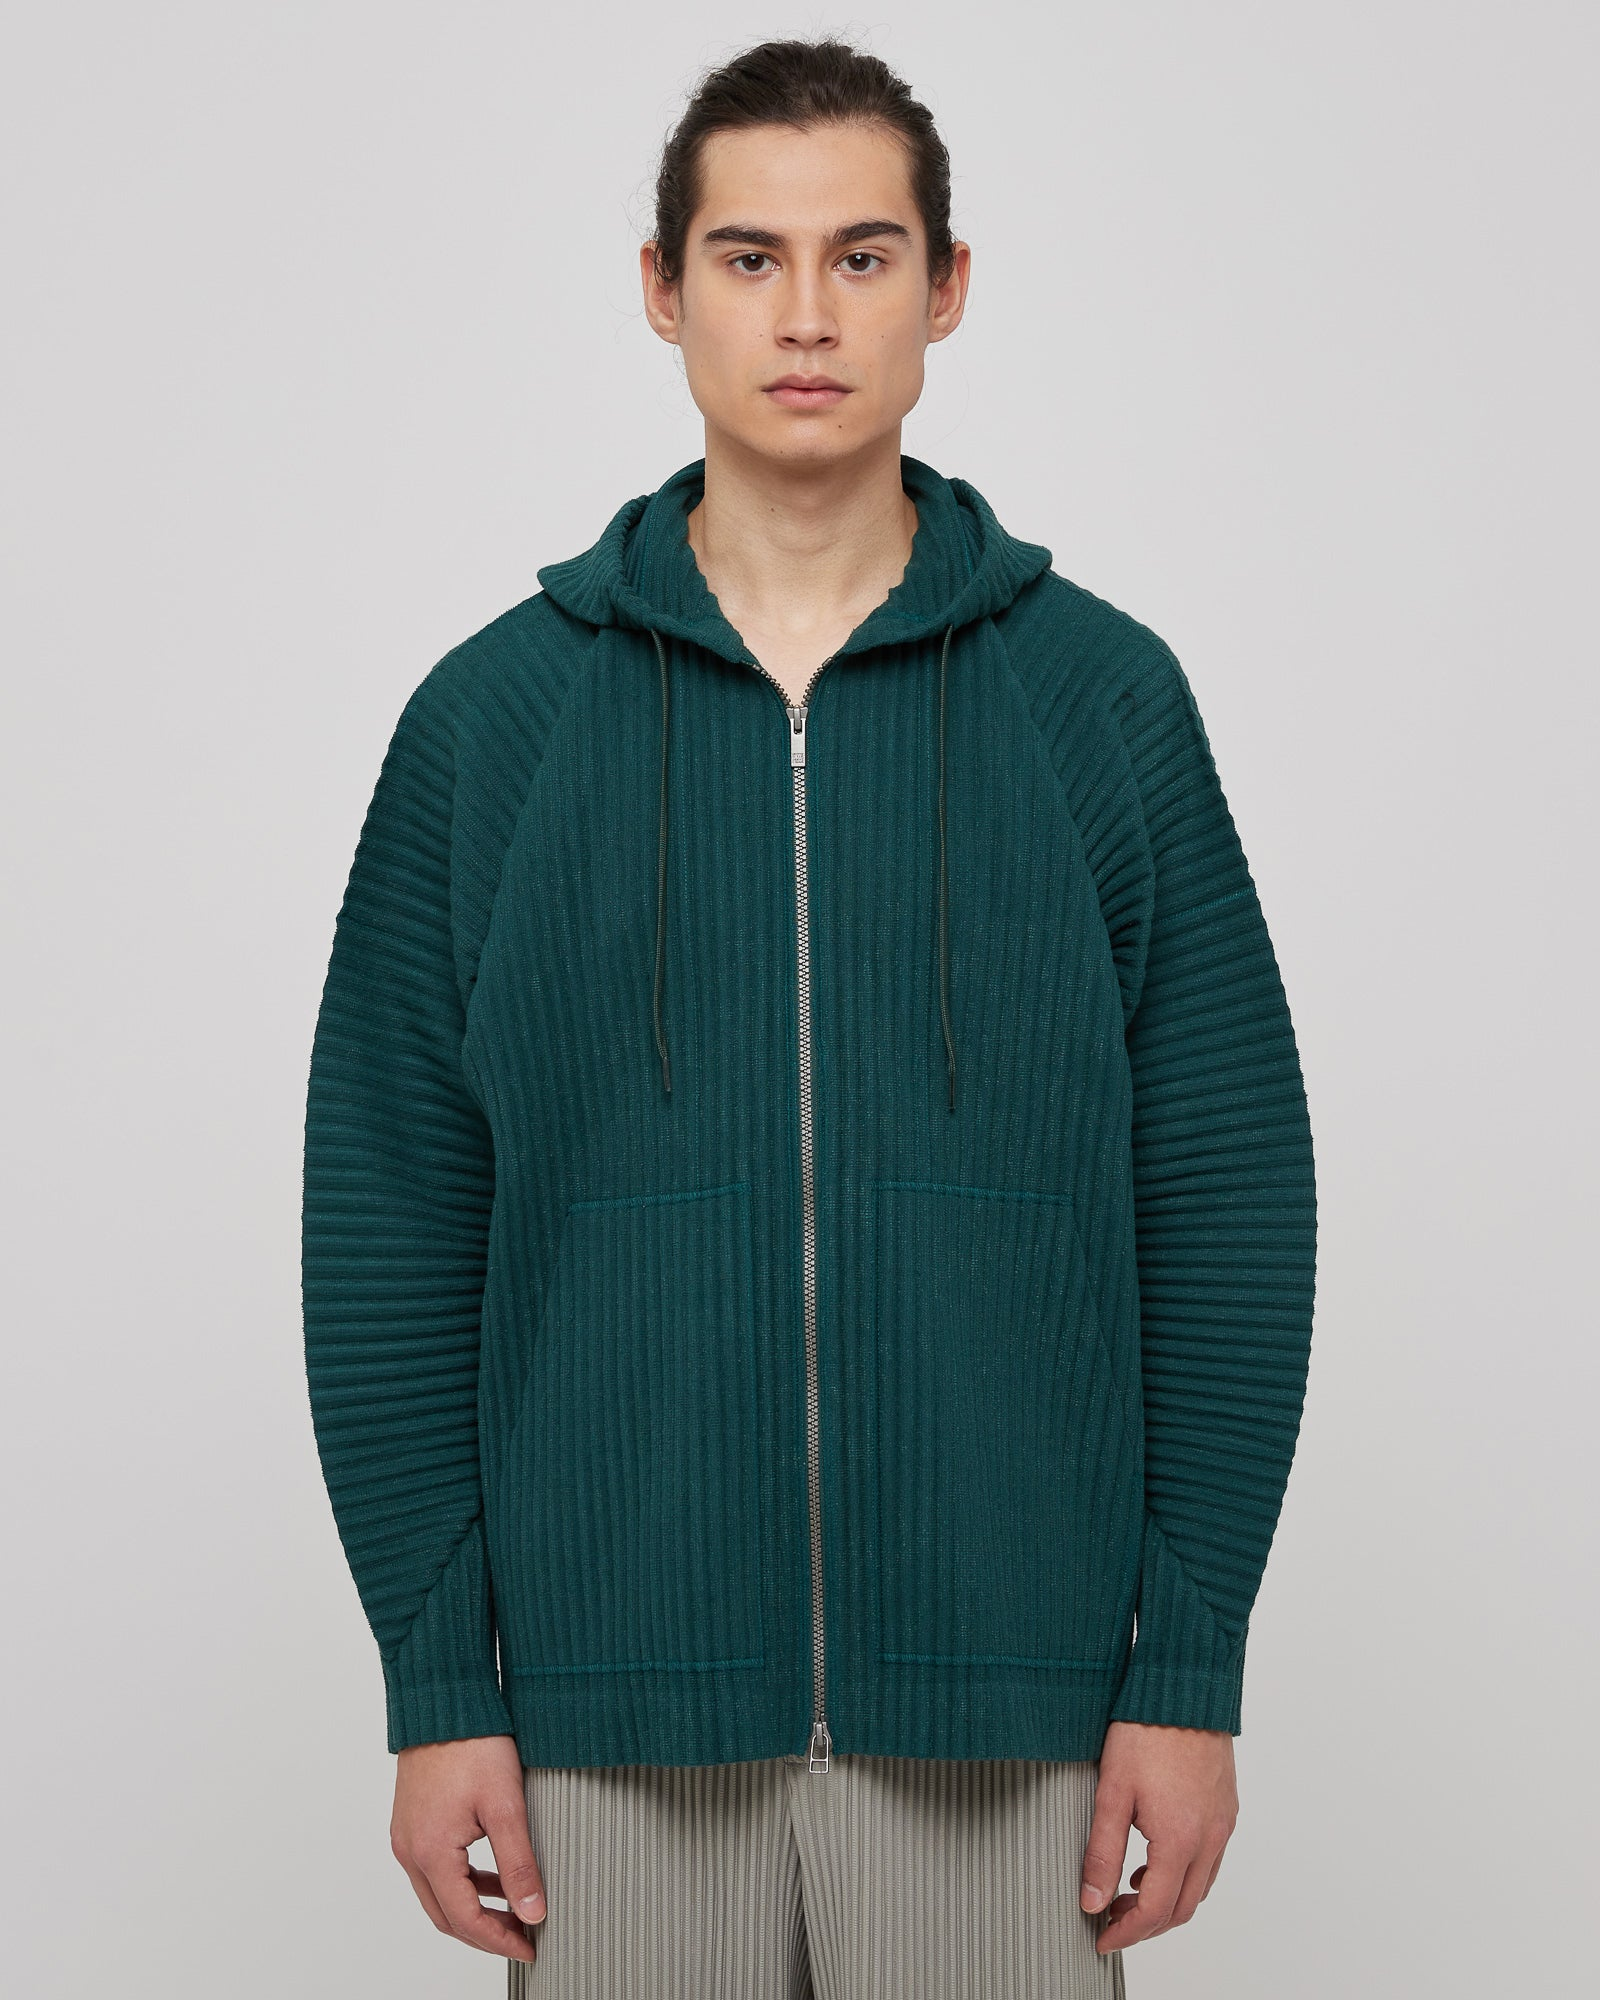 Cotton Surface Jacket in Dark Green